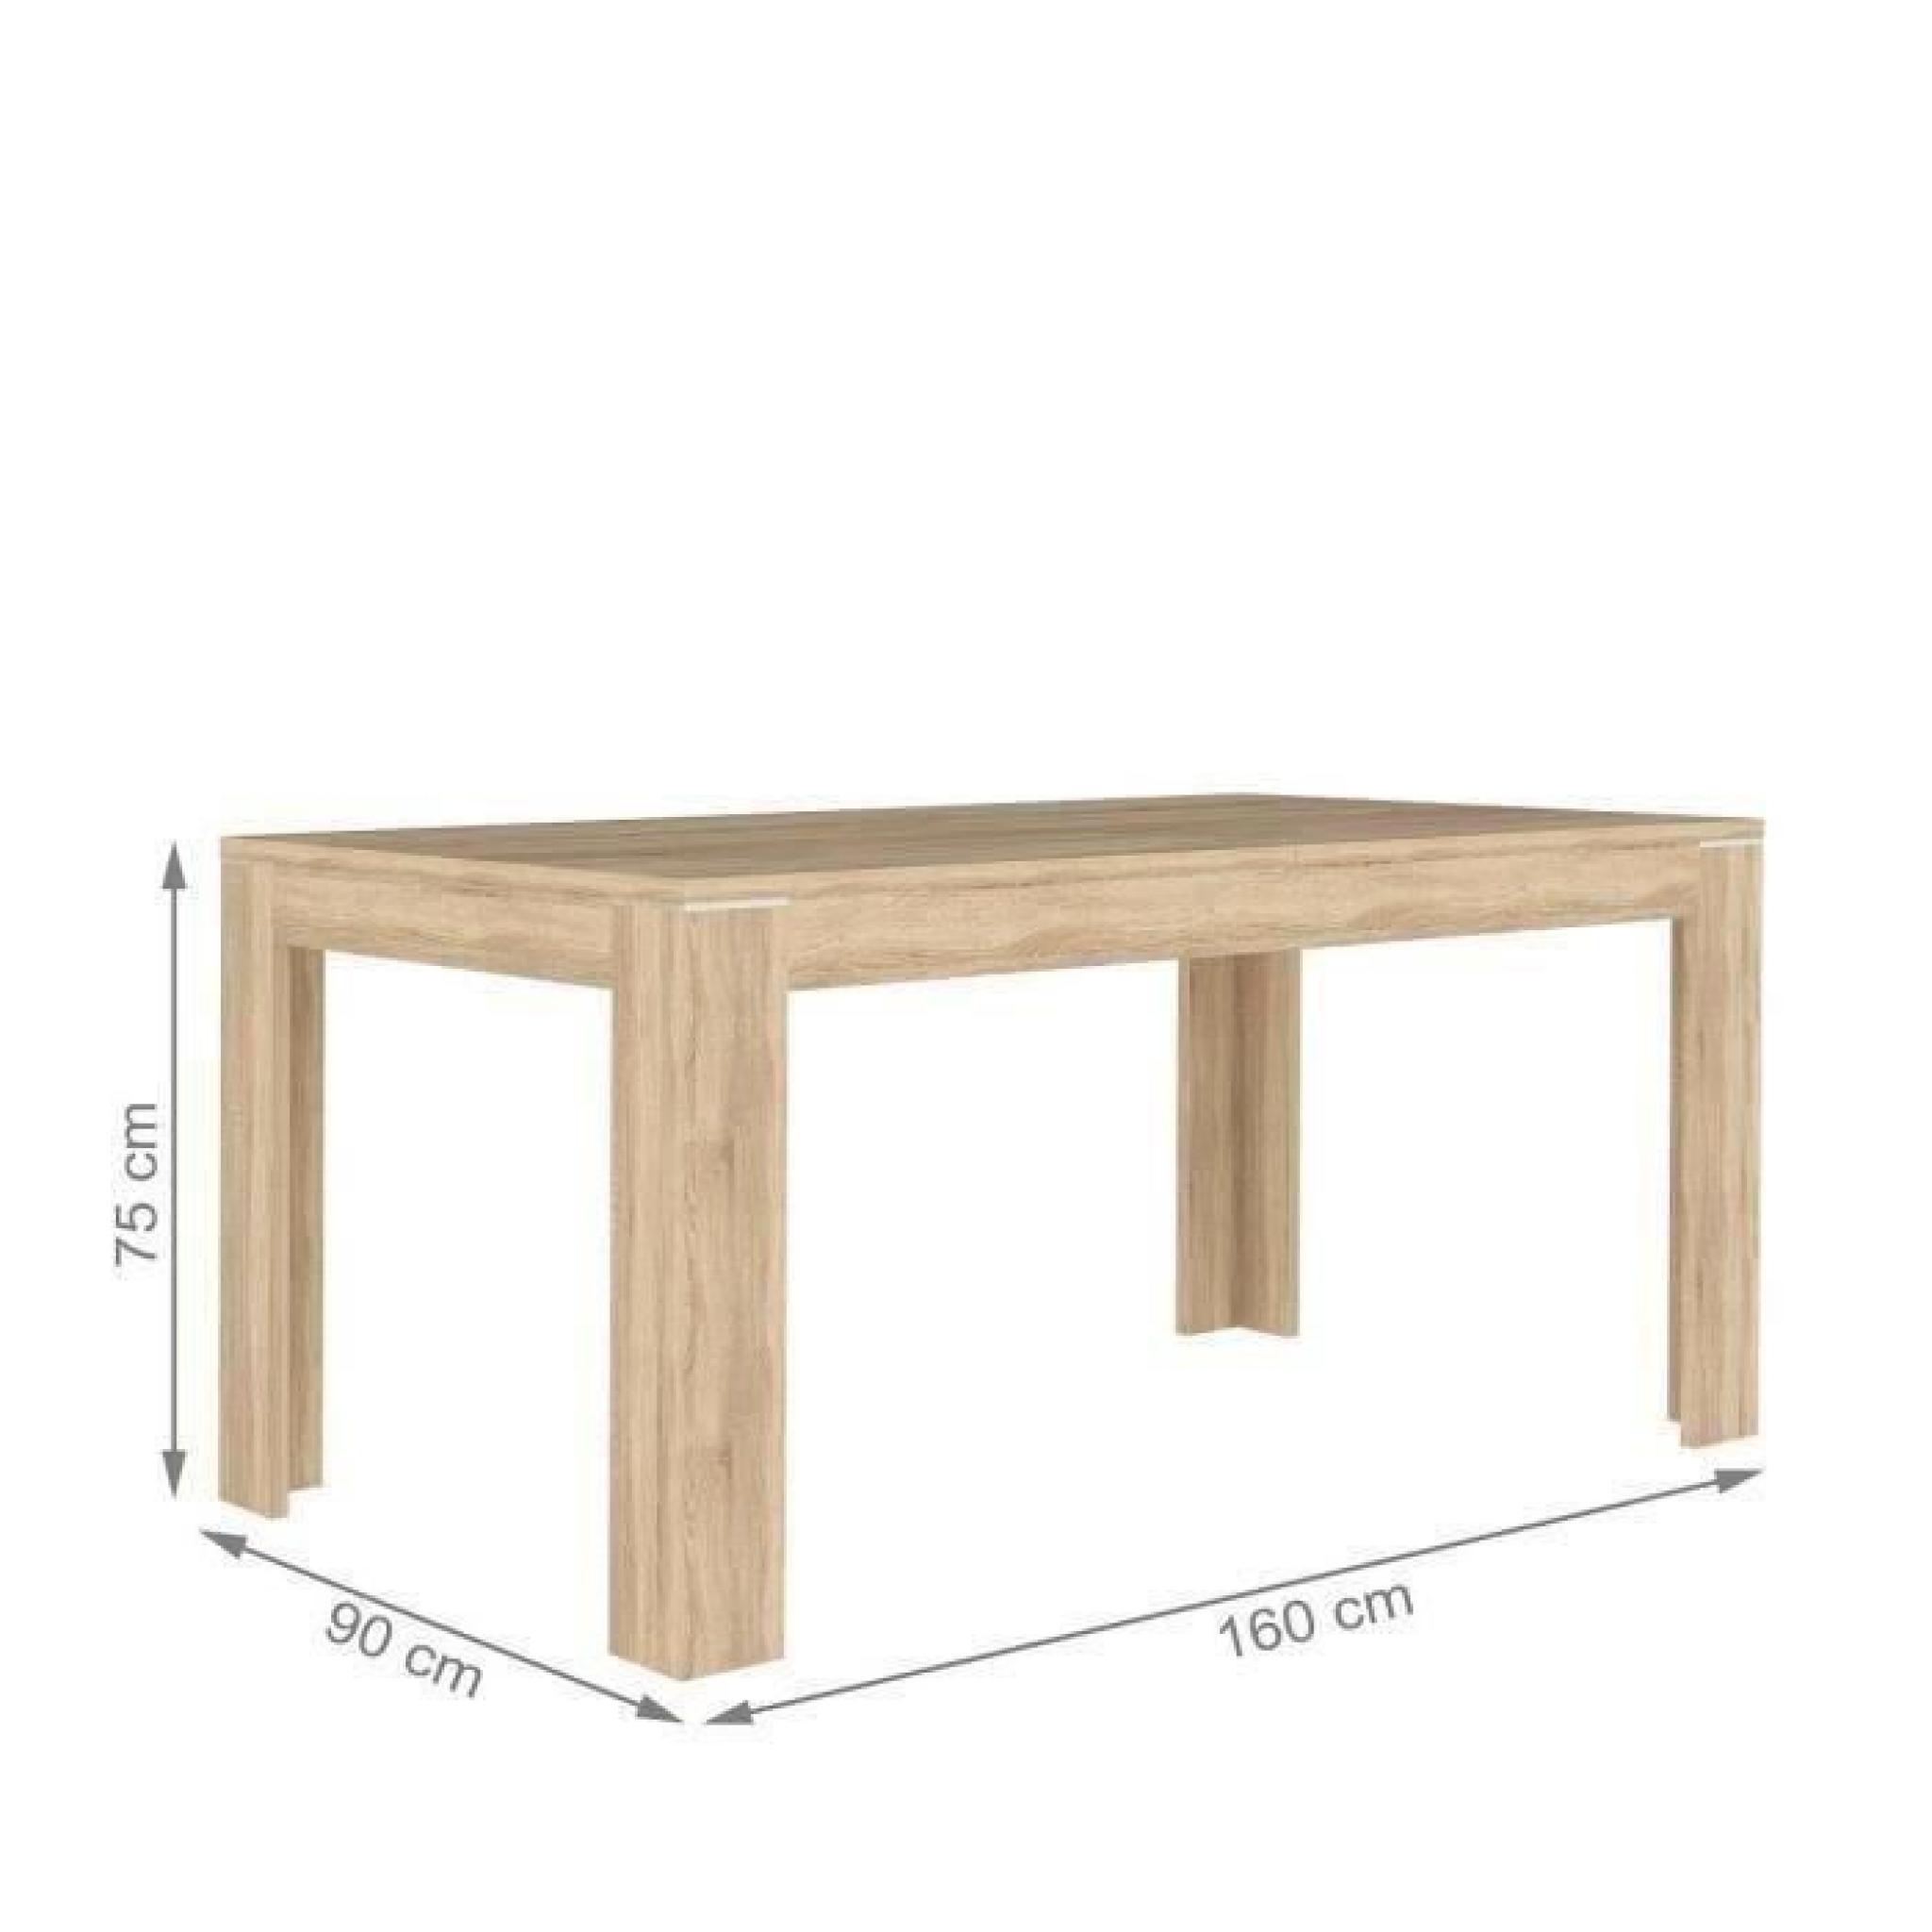 Table salle a manger extensible pas cher maison design for Table manger extensible